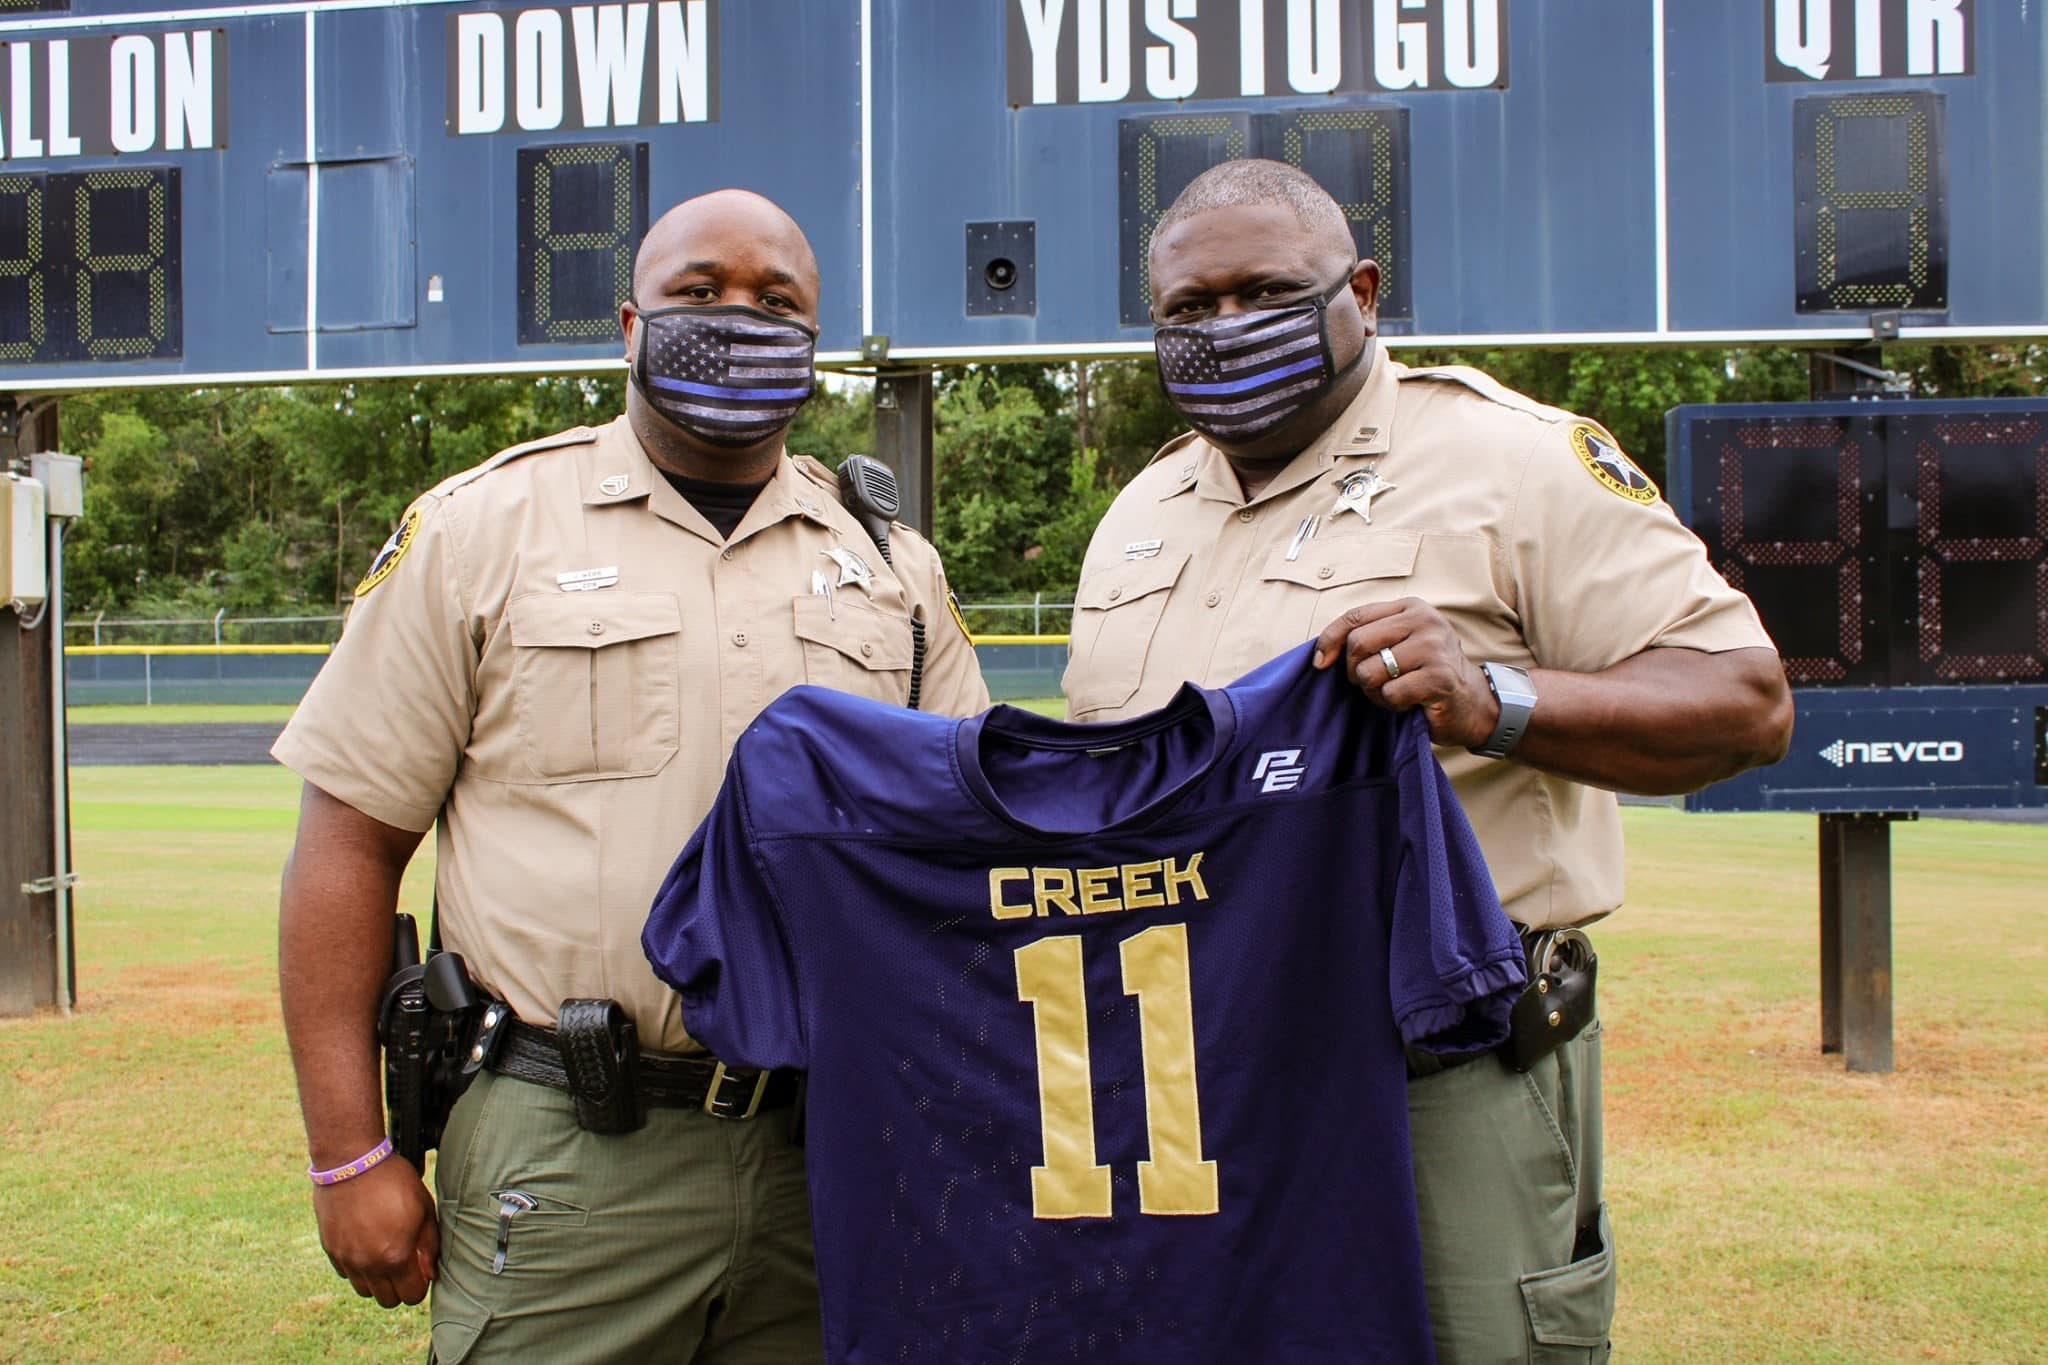 Battery Creek High School Football coaches presented Staff Sergeant Jeremiah Webb and Captain Alfredo H. Givens with a special jersey to recognize Beaufort County Sheriff's Office's continued commitment to the Dolphin students, faculty, staff and community.